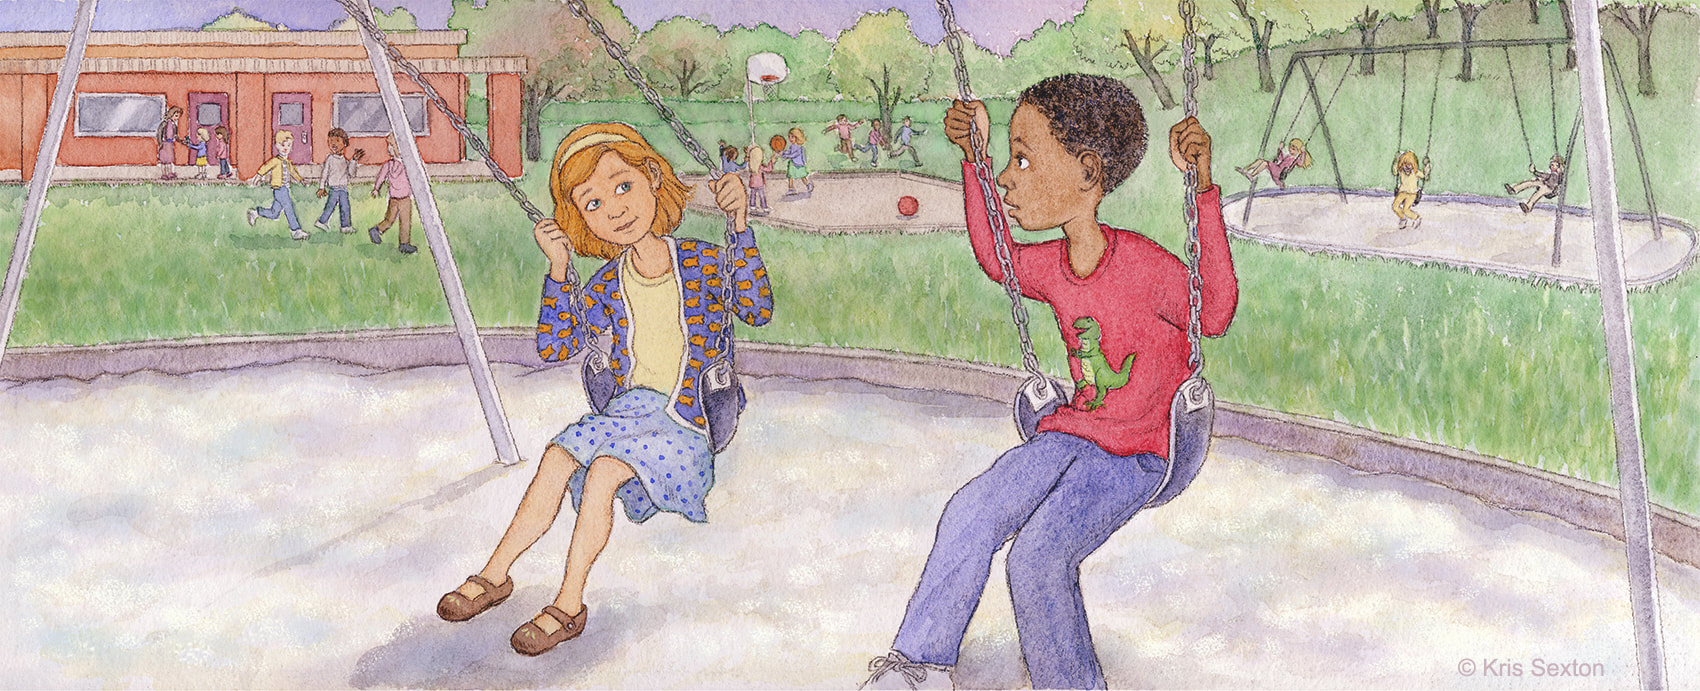 Friends: girl and boy on the school playground, sitting on swings and chatting.